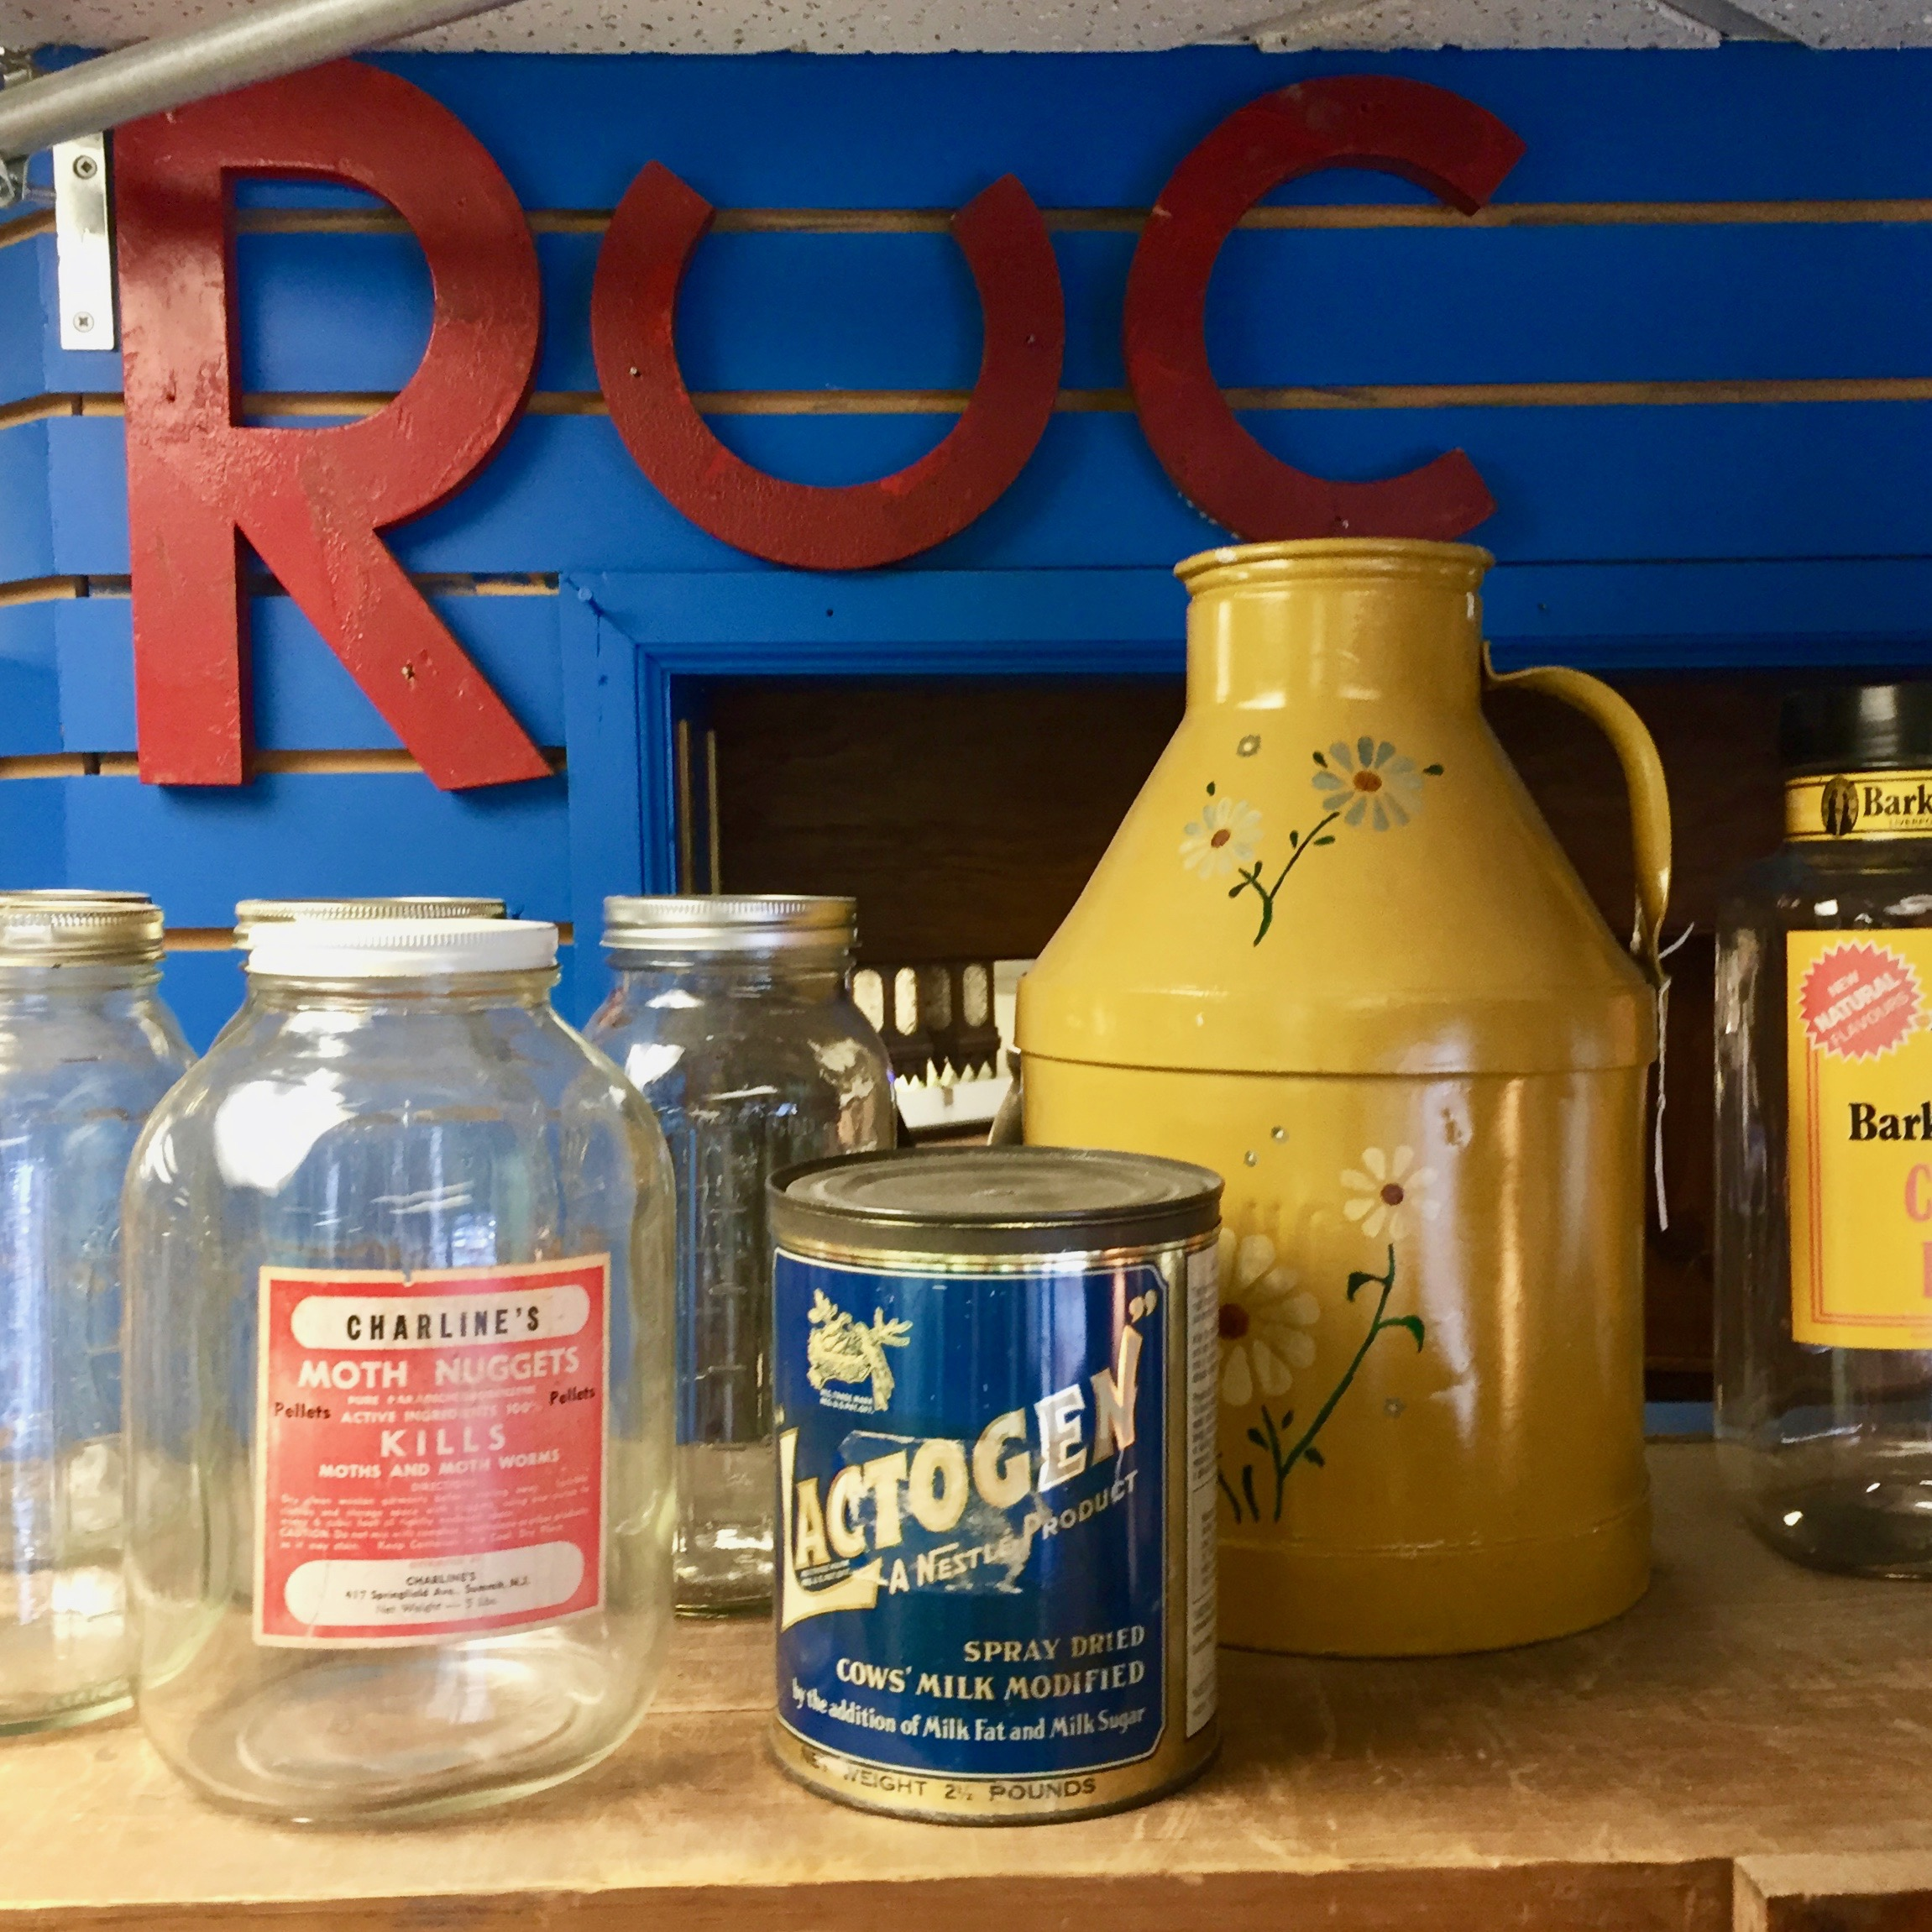 BRIAN RUCK ANTIQUES   Brian is a long time collector and dealer. His business consists primarily of country furniture, crocks, jugs, bottles, tools and the like. He is also a clock collector, and sells clocks and barometers along with other antiques. Find Brian's booth on the 1st floor in the area facing Morris Avenue.